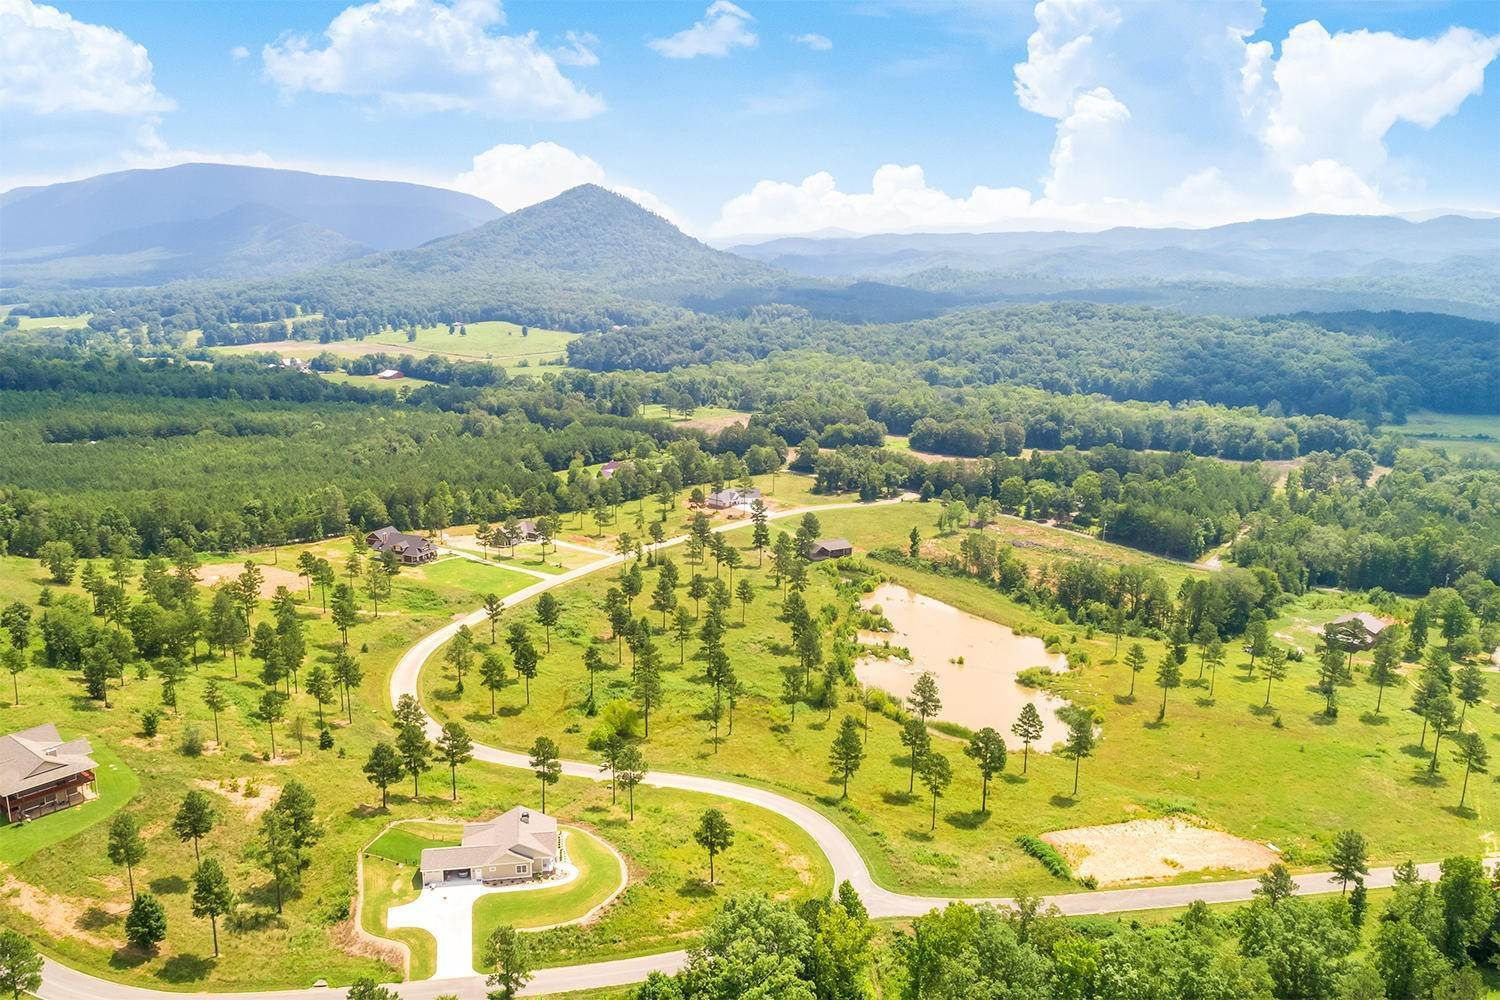 Land for Sale at Lots 27&28 Ocoee Ridge Subdivision Ocoee, Tennessee 37361 United States